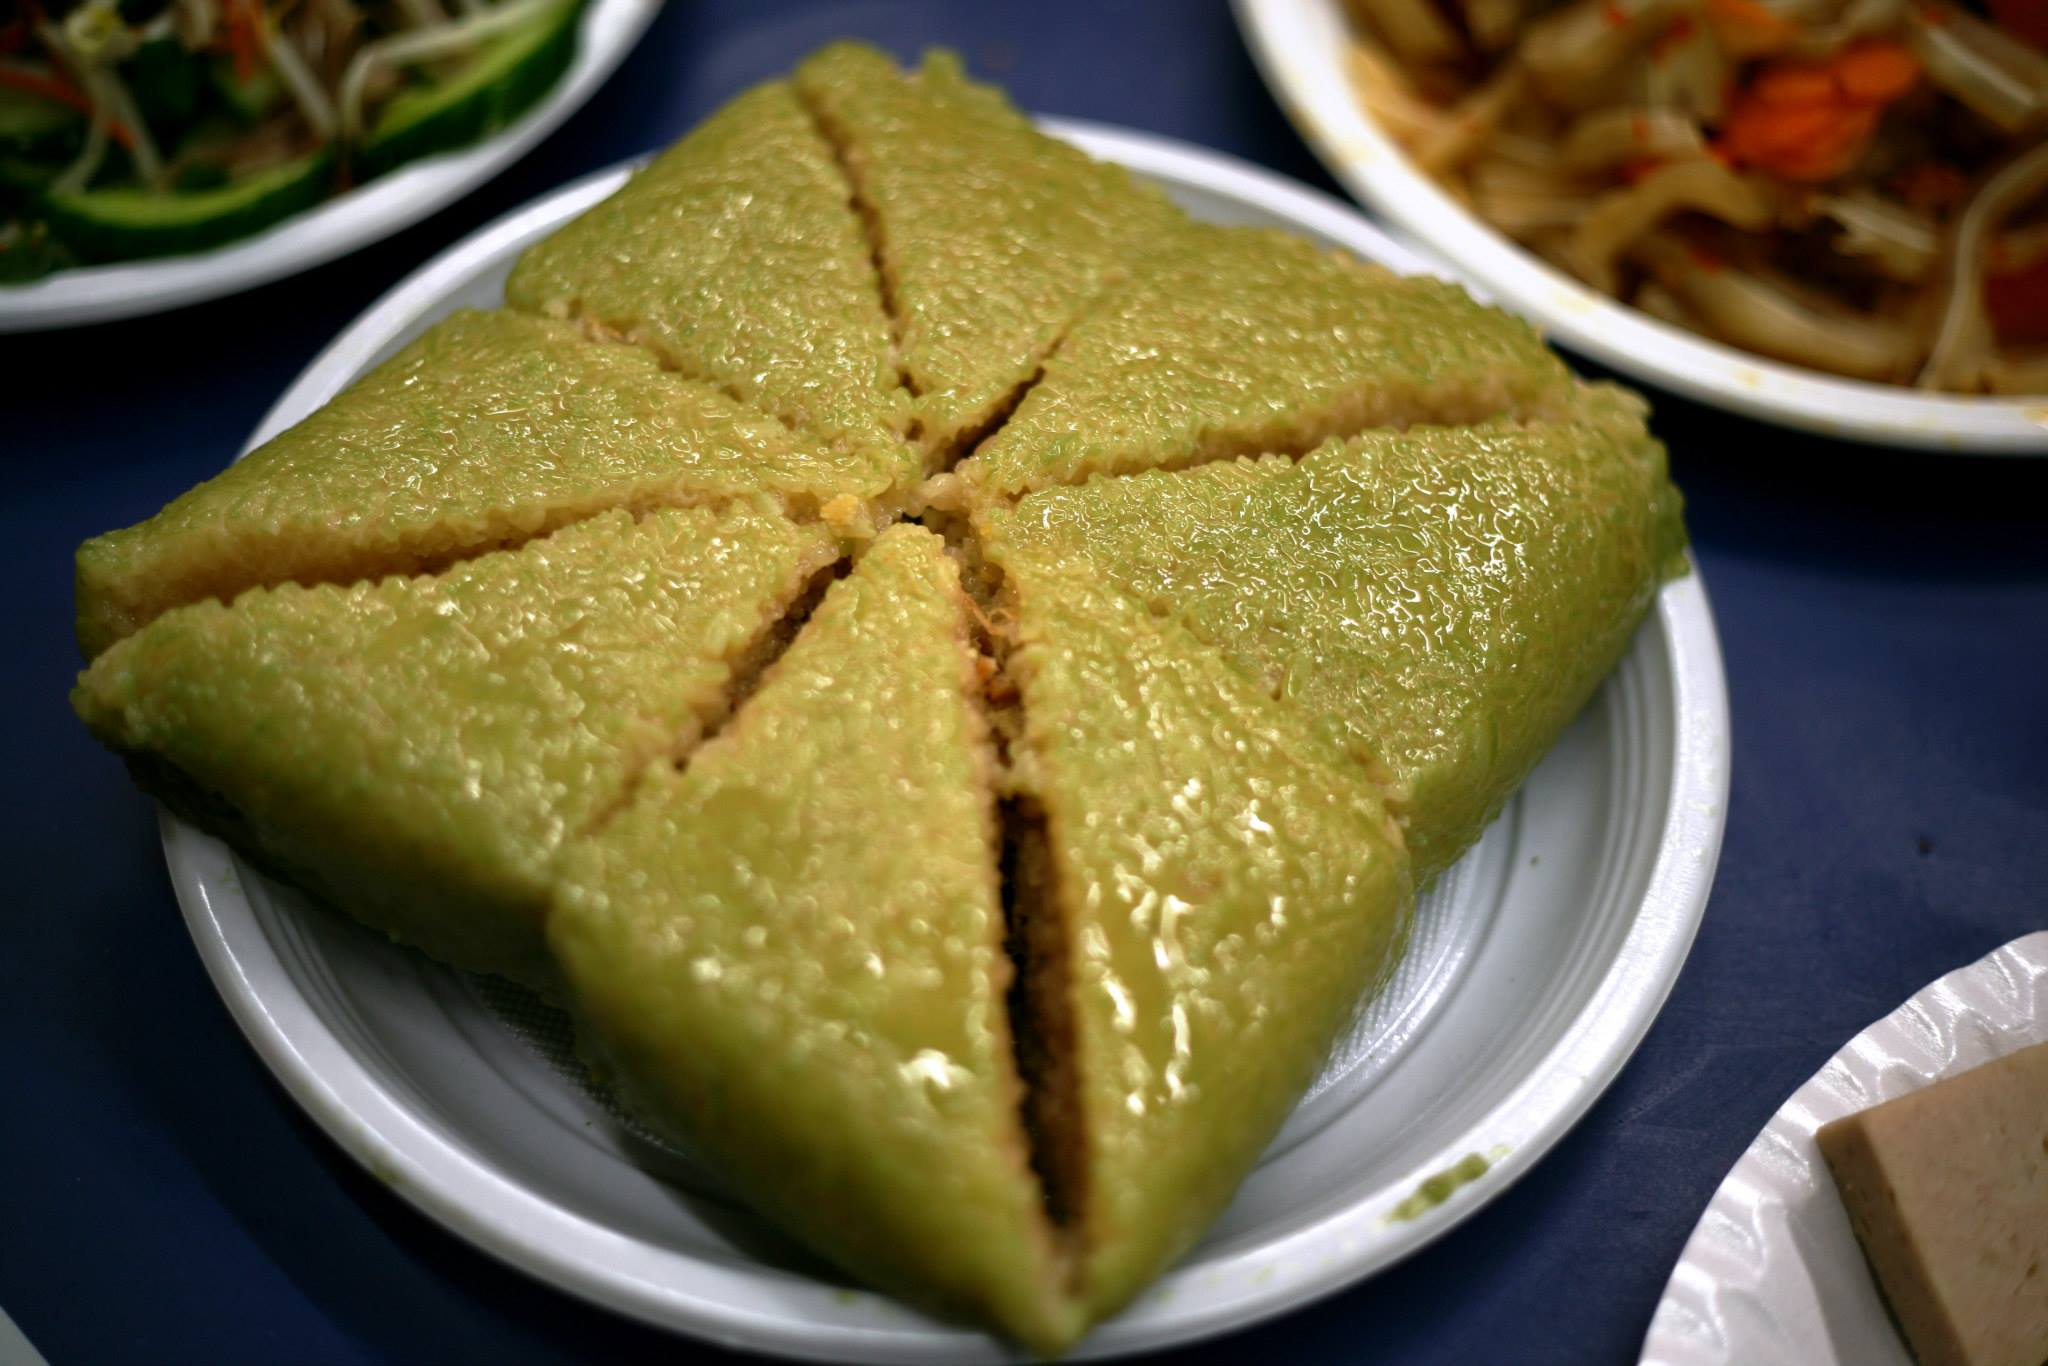 chung cake The banh chung were distributed to my siblings the next day and by night, we were all whatsapping each other photos of them pan-fried for dinner we all agreed that there was such a depth of flavour in the filling.